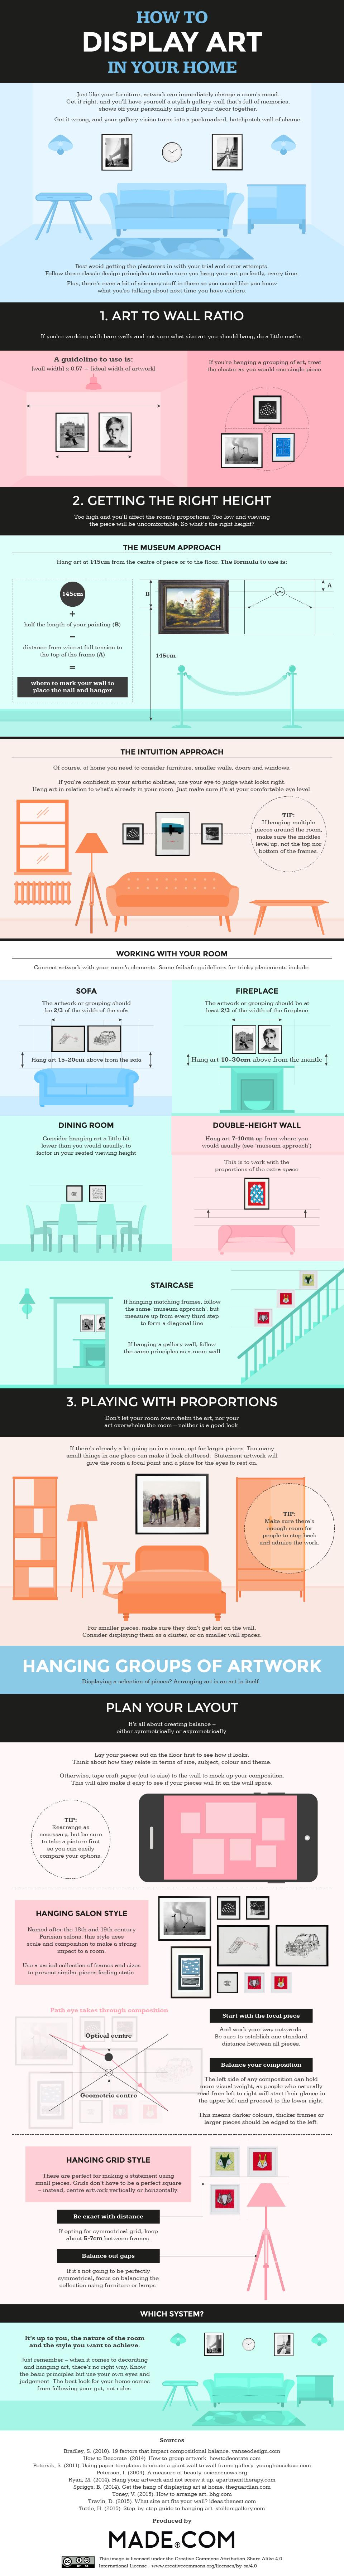 How-to-display-art-in-your-home